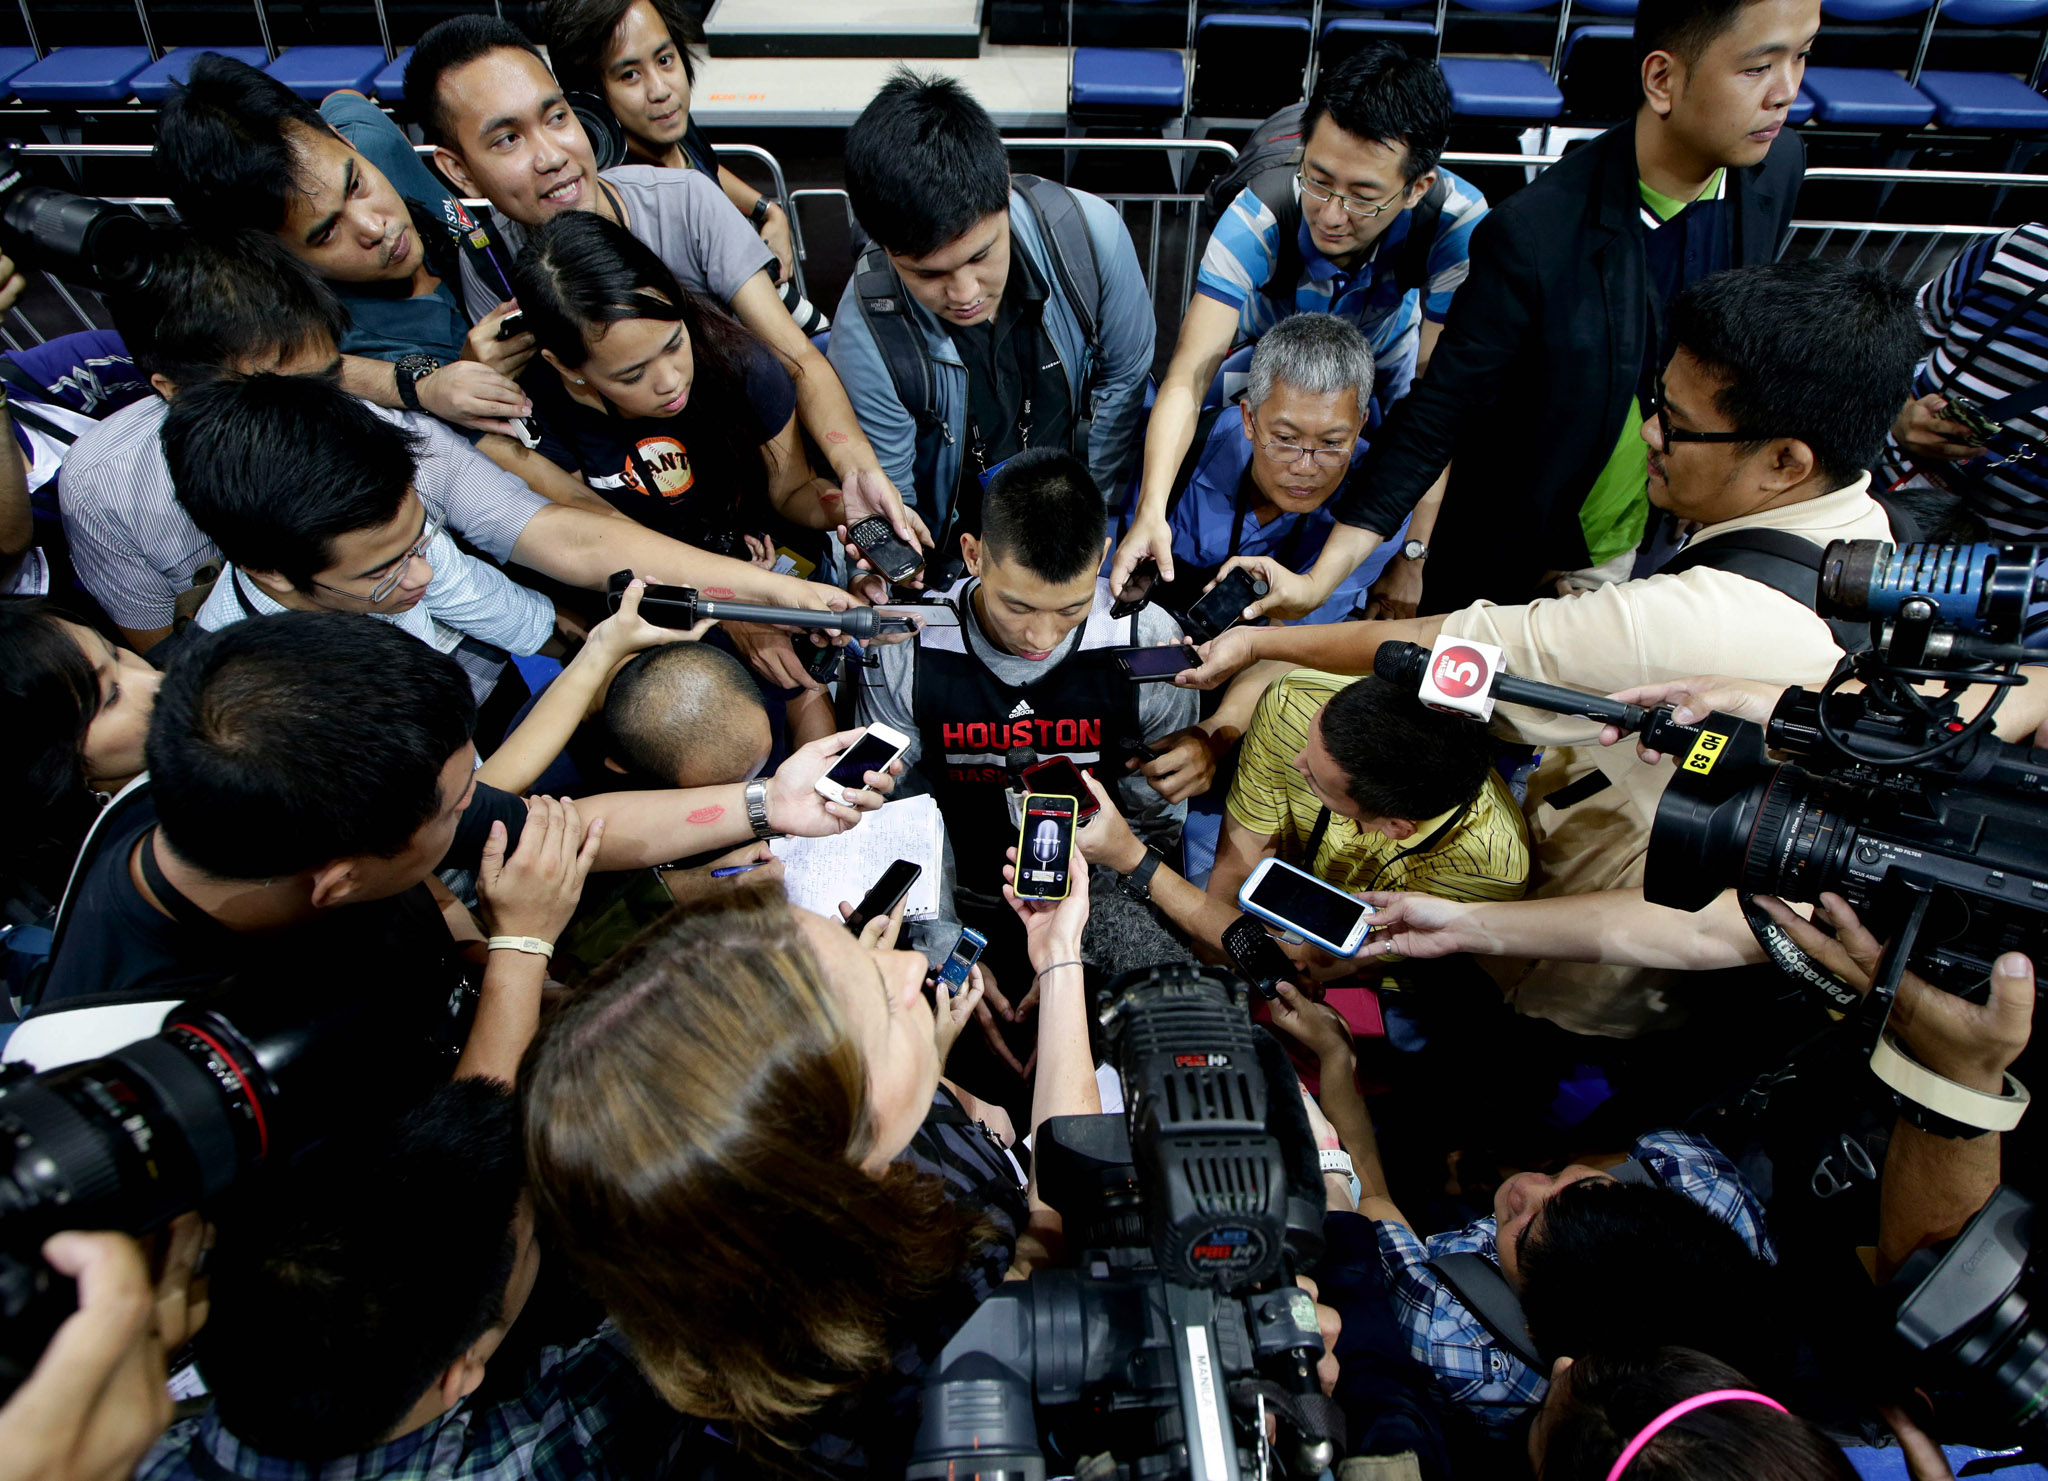 The Houston Rockets' Jeremy Lin is interviewed by a horde of reporters during a break in his team's practice at the Mall of Asia Arena at suburban Pasay city, south of Manila, Philippines. Lin has easily stolen the spotlight as the Houston Rockets practice for this week's first ever NBA preseason game against the Indiana Pacers in the basketball-obsessed Philippines.